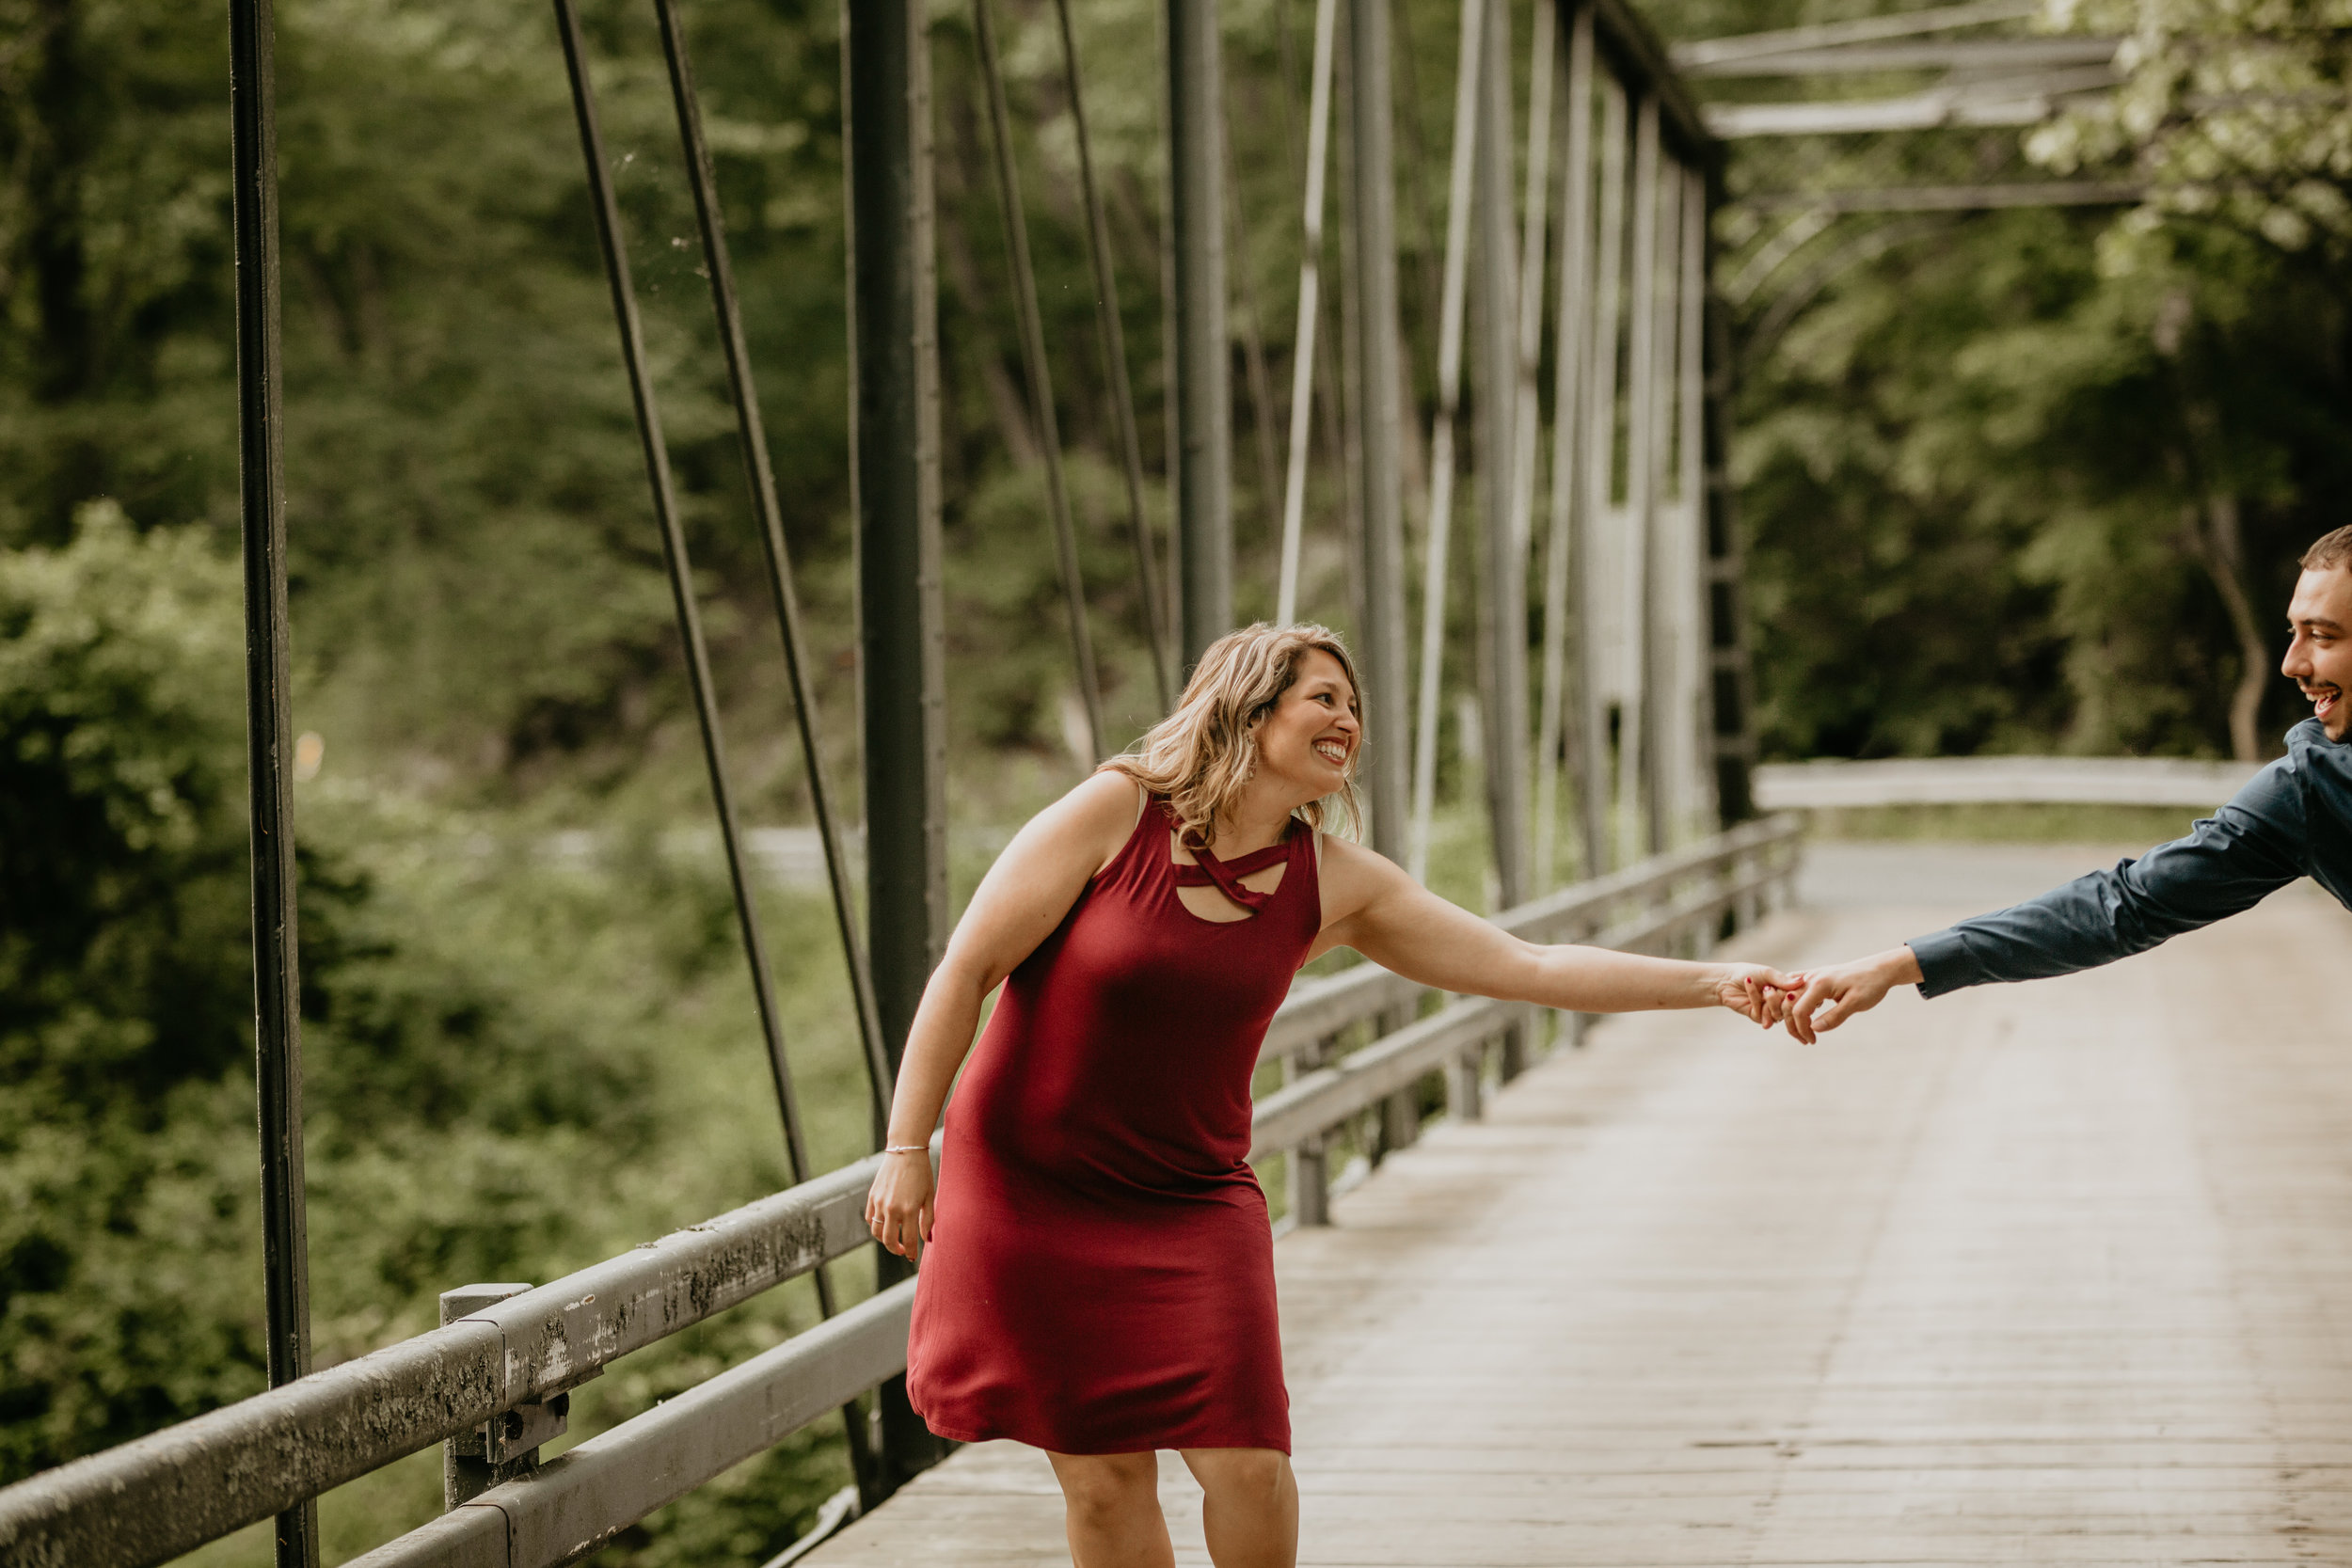 Nicole-Daacke-Photography-rock-state-park-overlook-king-queen-seat-maryland-hiking-adventure-engagement-session-photos-portraits-summer-bel-air-dog-engagement-session-6.jpg